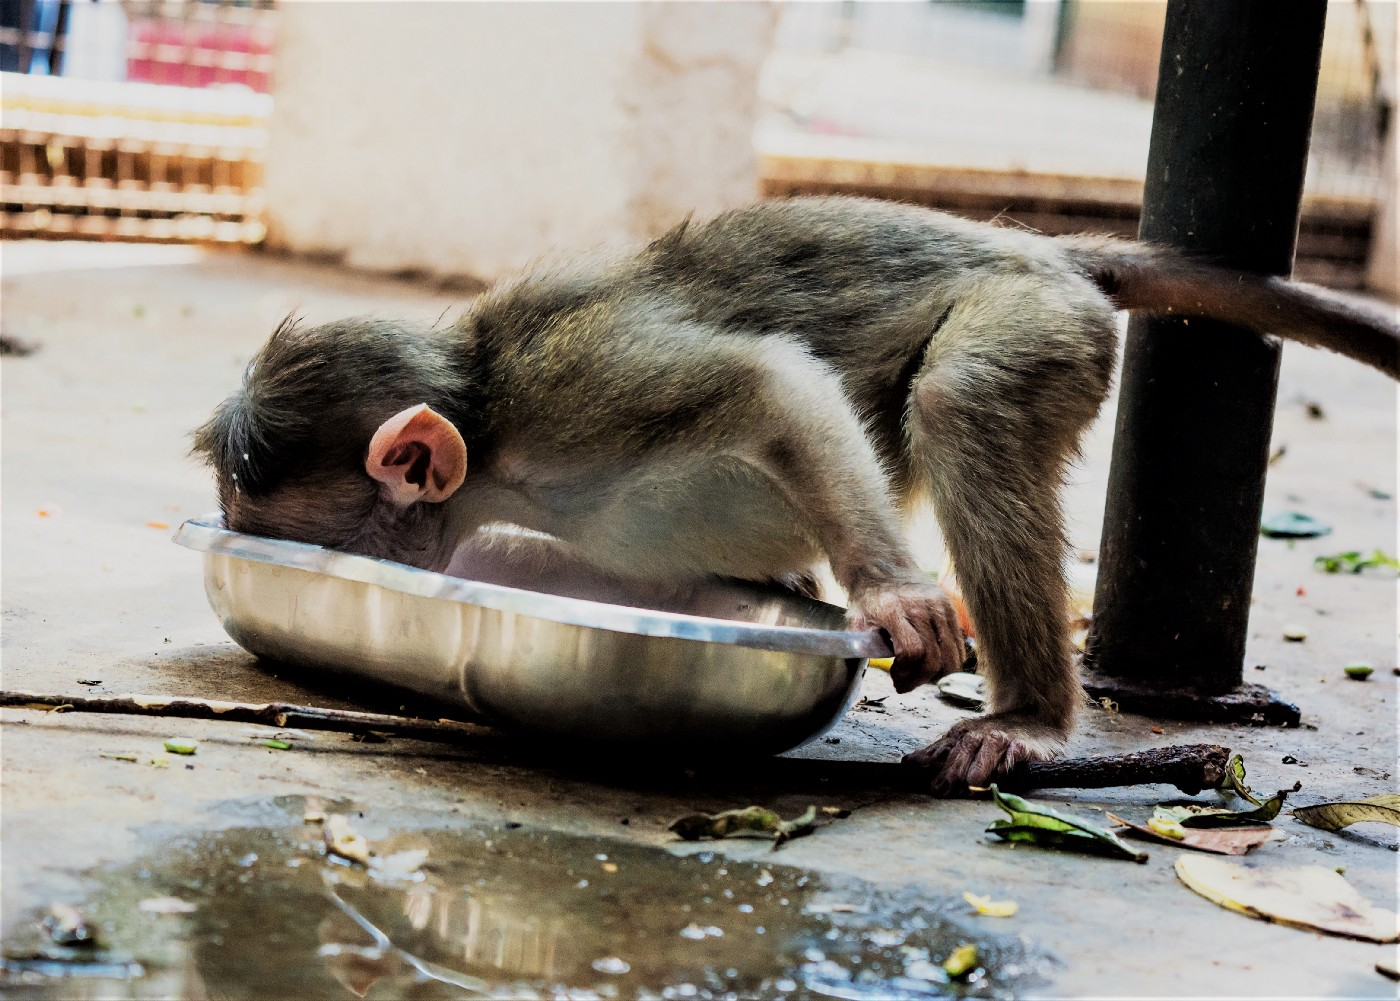 A monkey's face planted head first in a stainless steel pan.